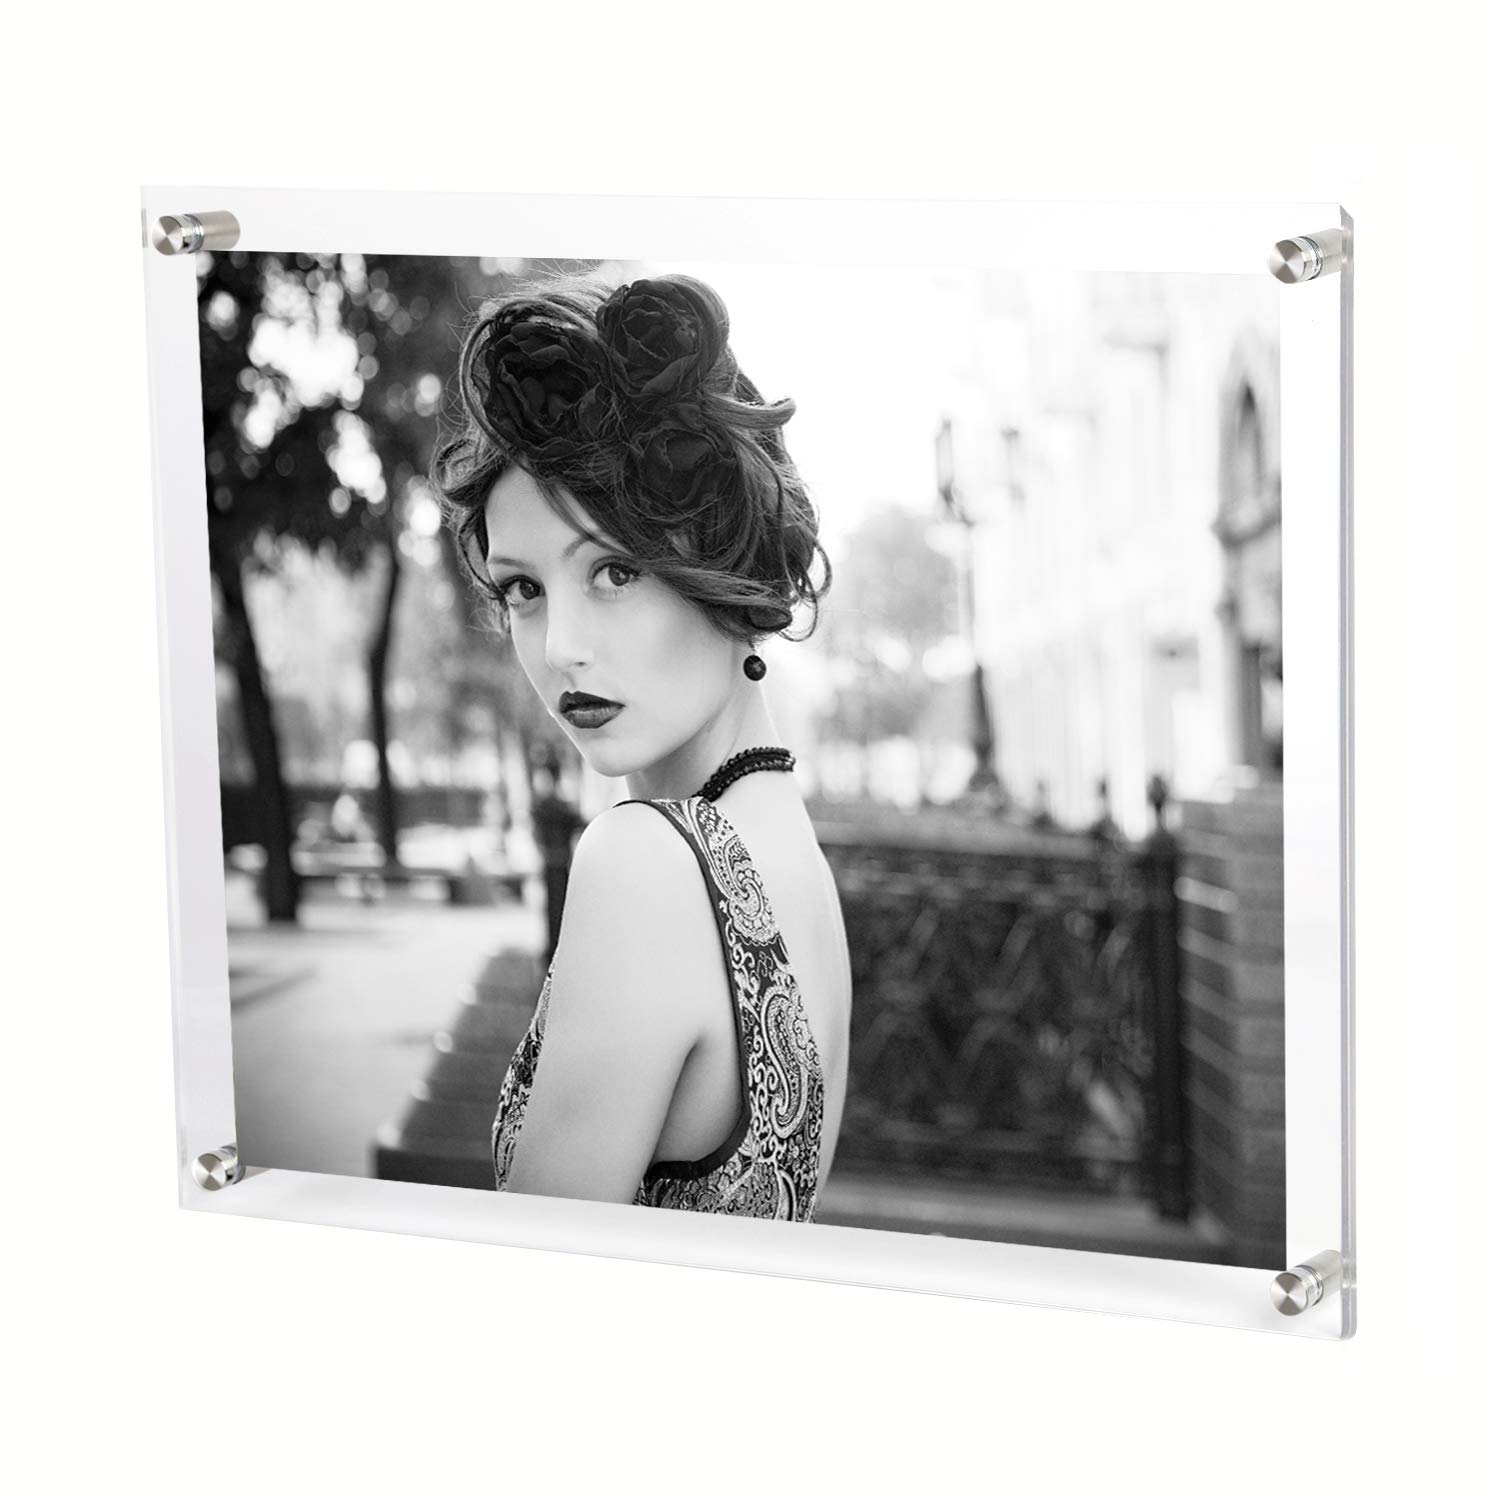 Bloberey 11 x 14 Acrylic Picture Frames Wall Mount Photo Frame Frameless Clear Floating Frame for Document Certificate Artwork(4 Pack)